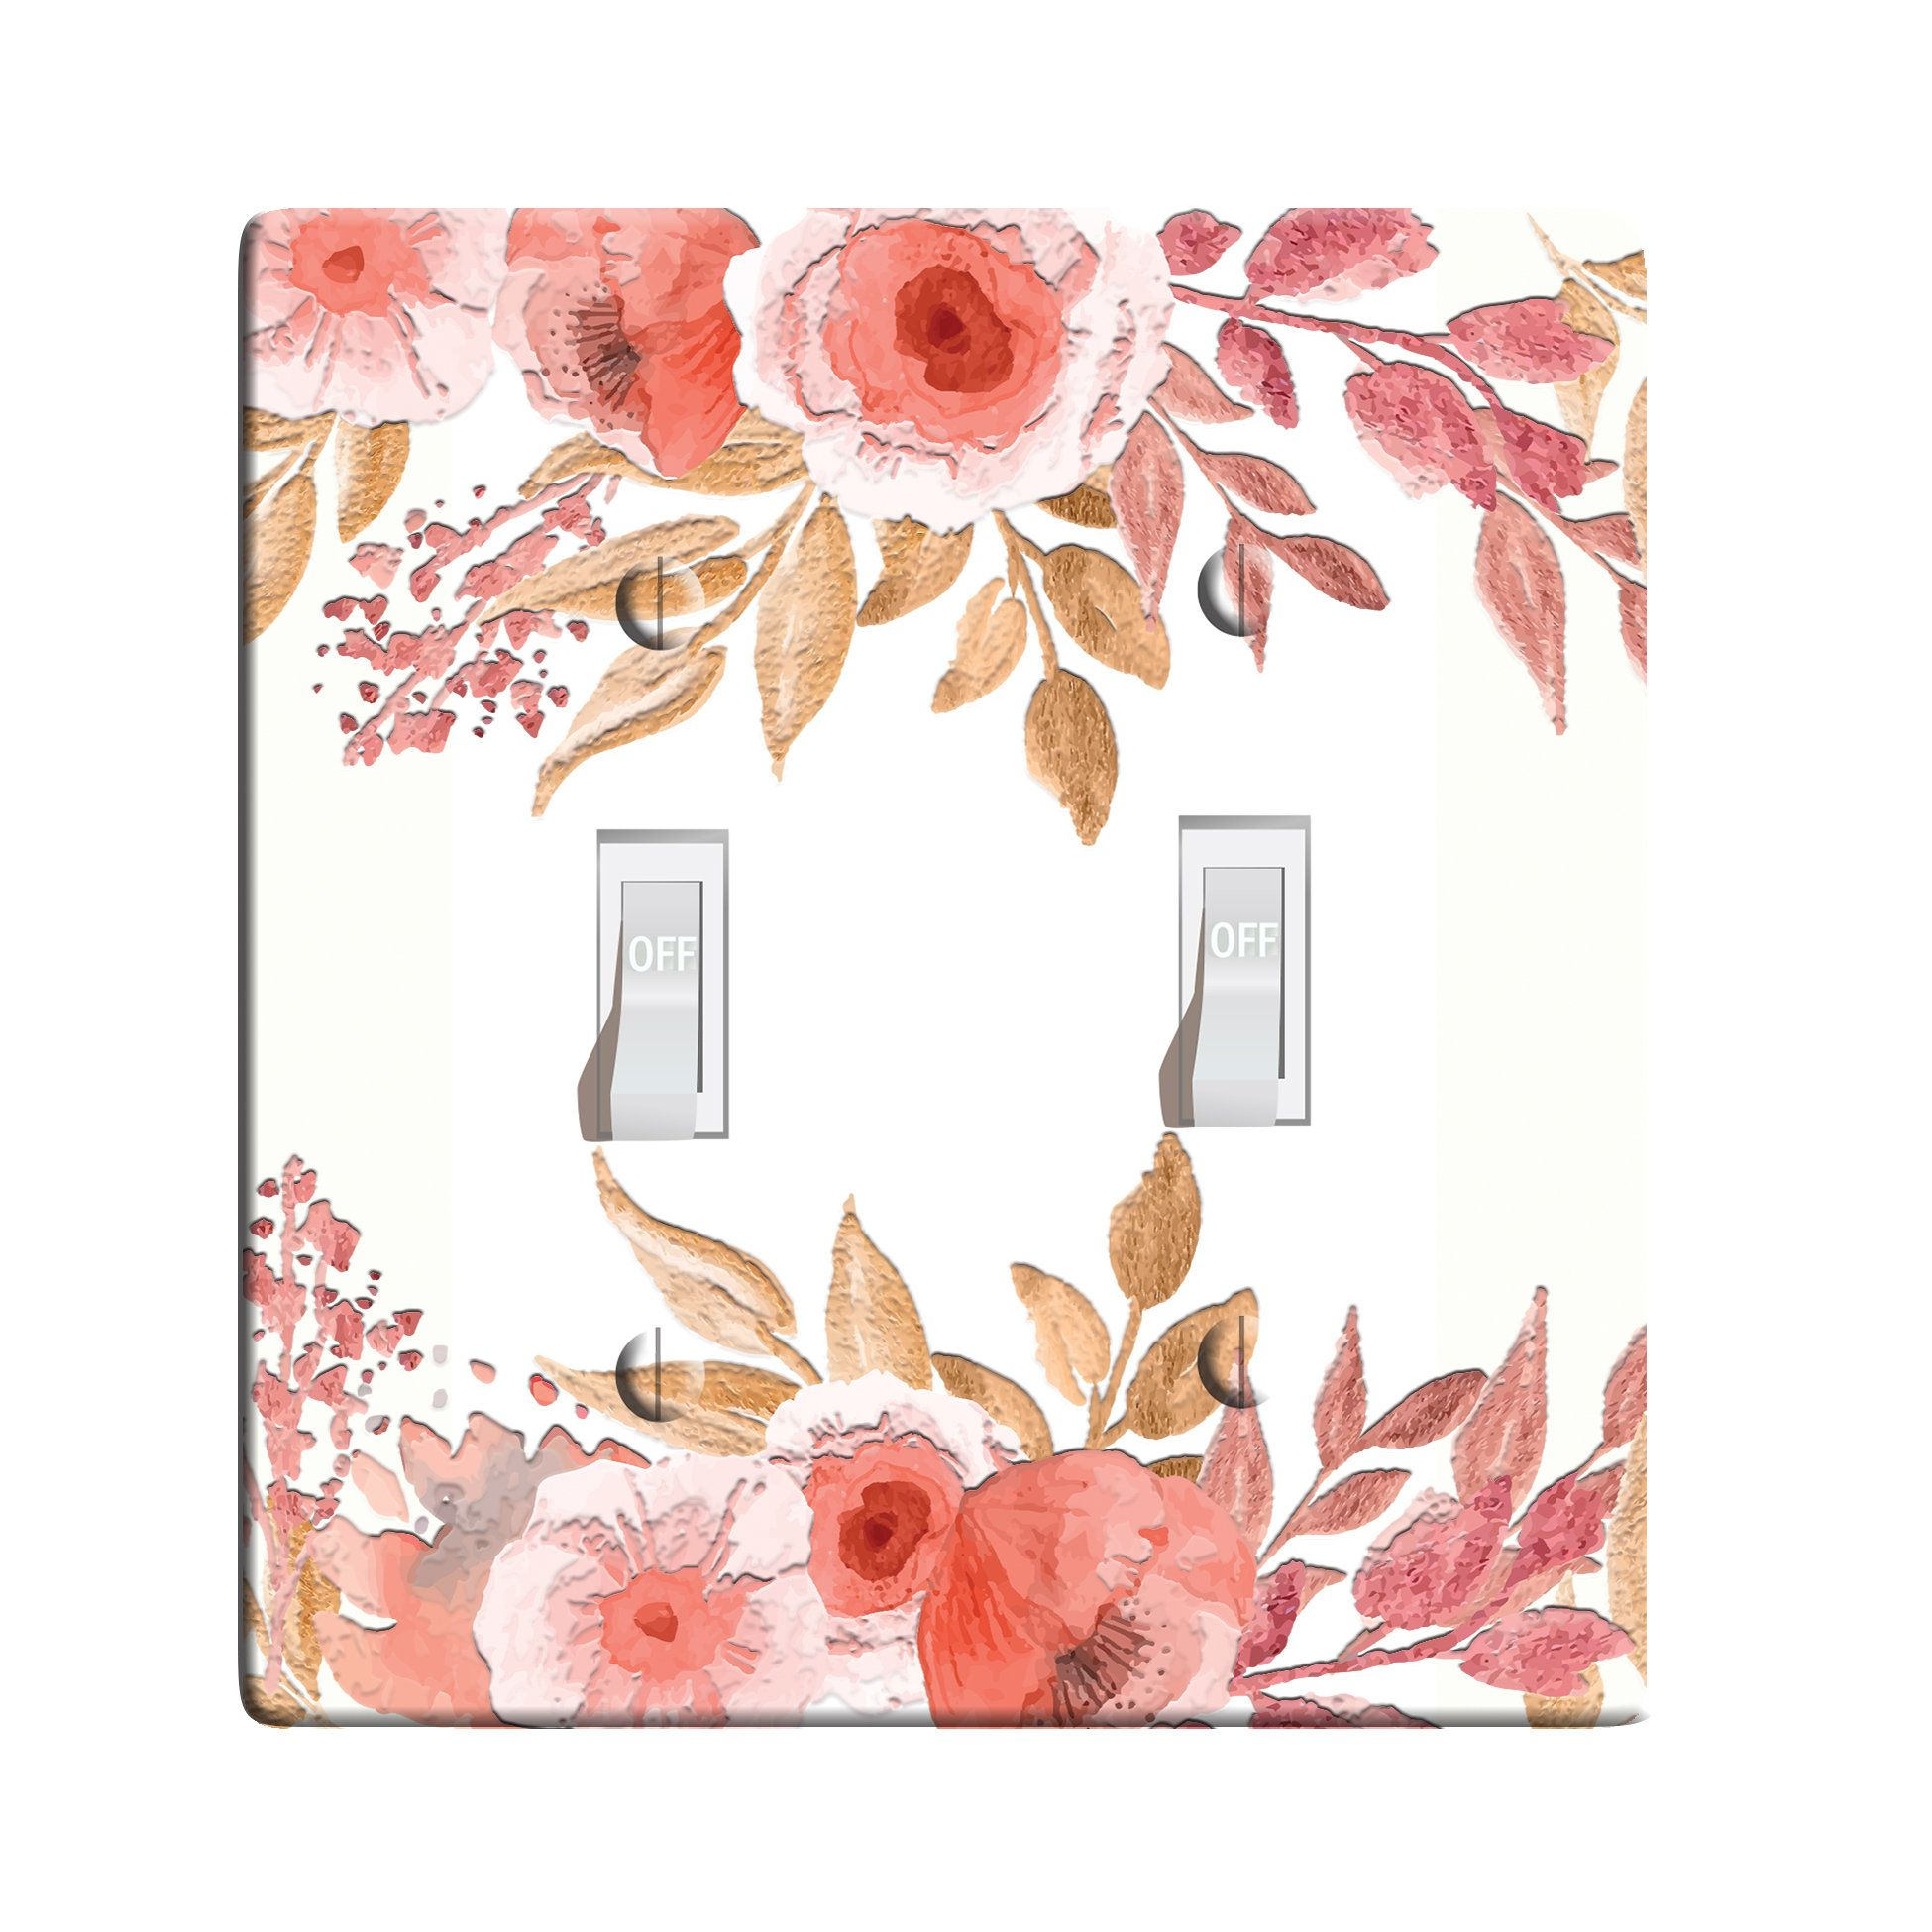 3D Printed Maxi Metal Peach Golden Floral Switch Plate